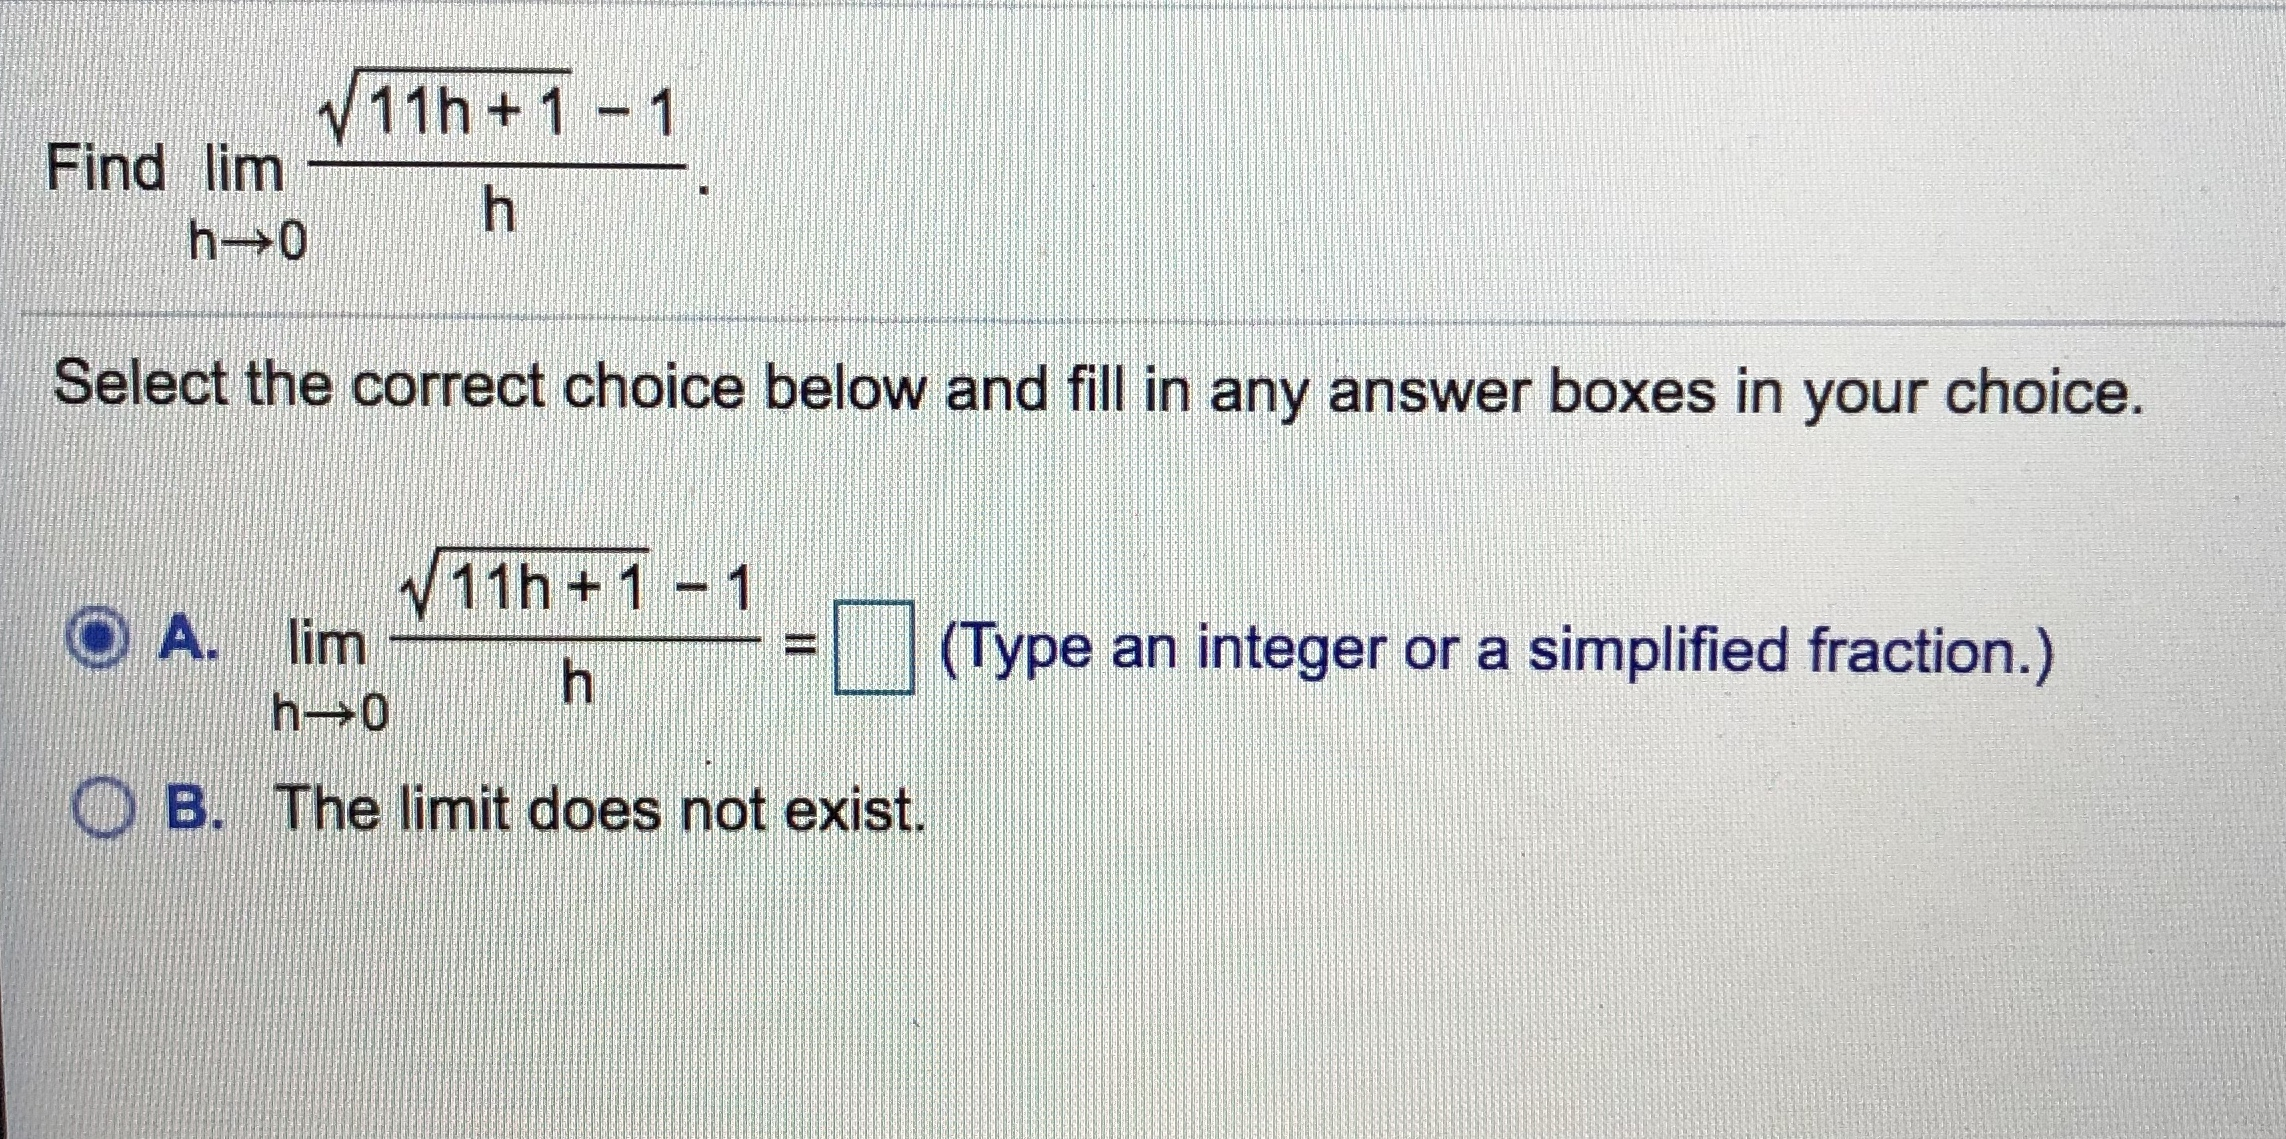 、/ 11 h + 1-1 Find lim Select the correct choice below and fill in any answer boxes in your choice v11h +1 -1 A. lim ーーーーーーーーーーー 「 1(Type an integer or a simplified fraction) ー h→0 B. The limit does not exist